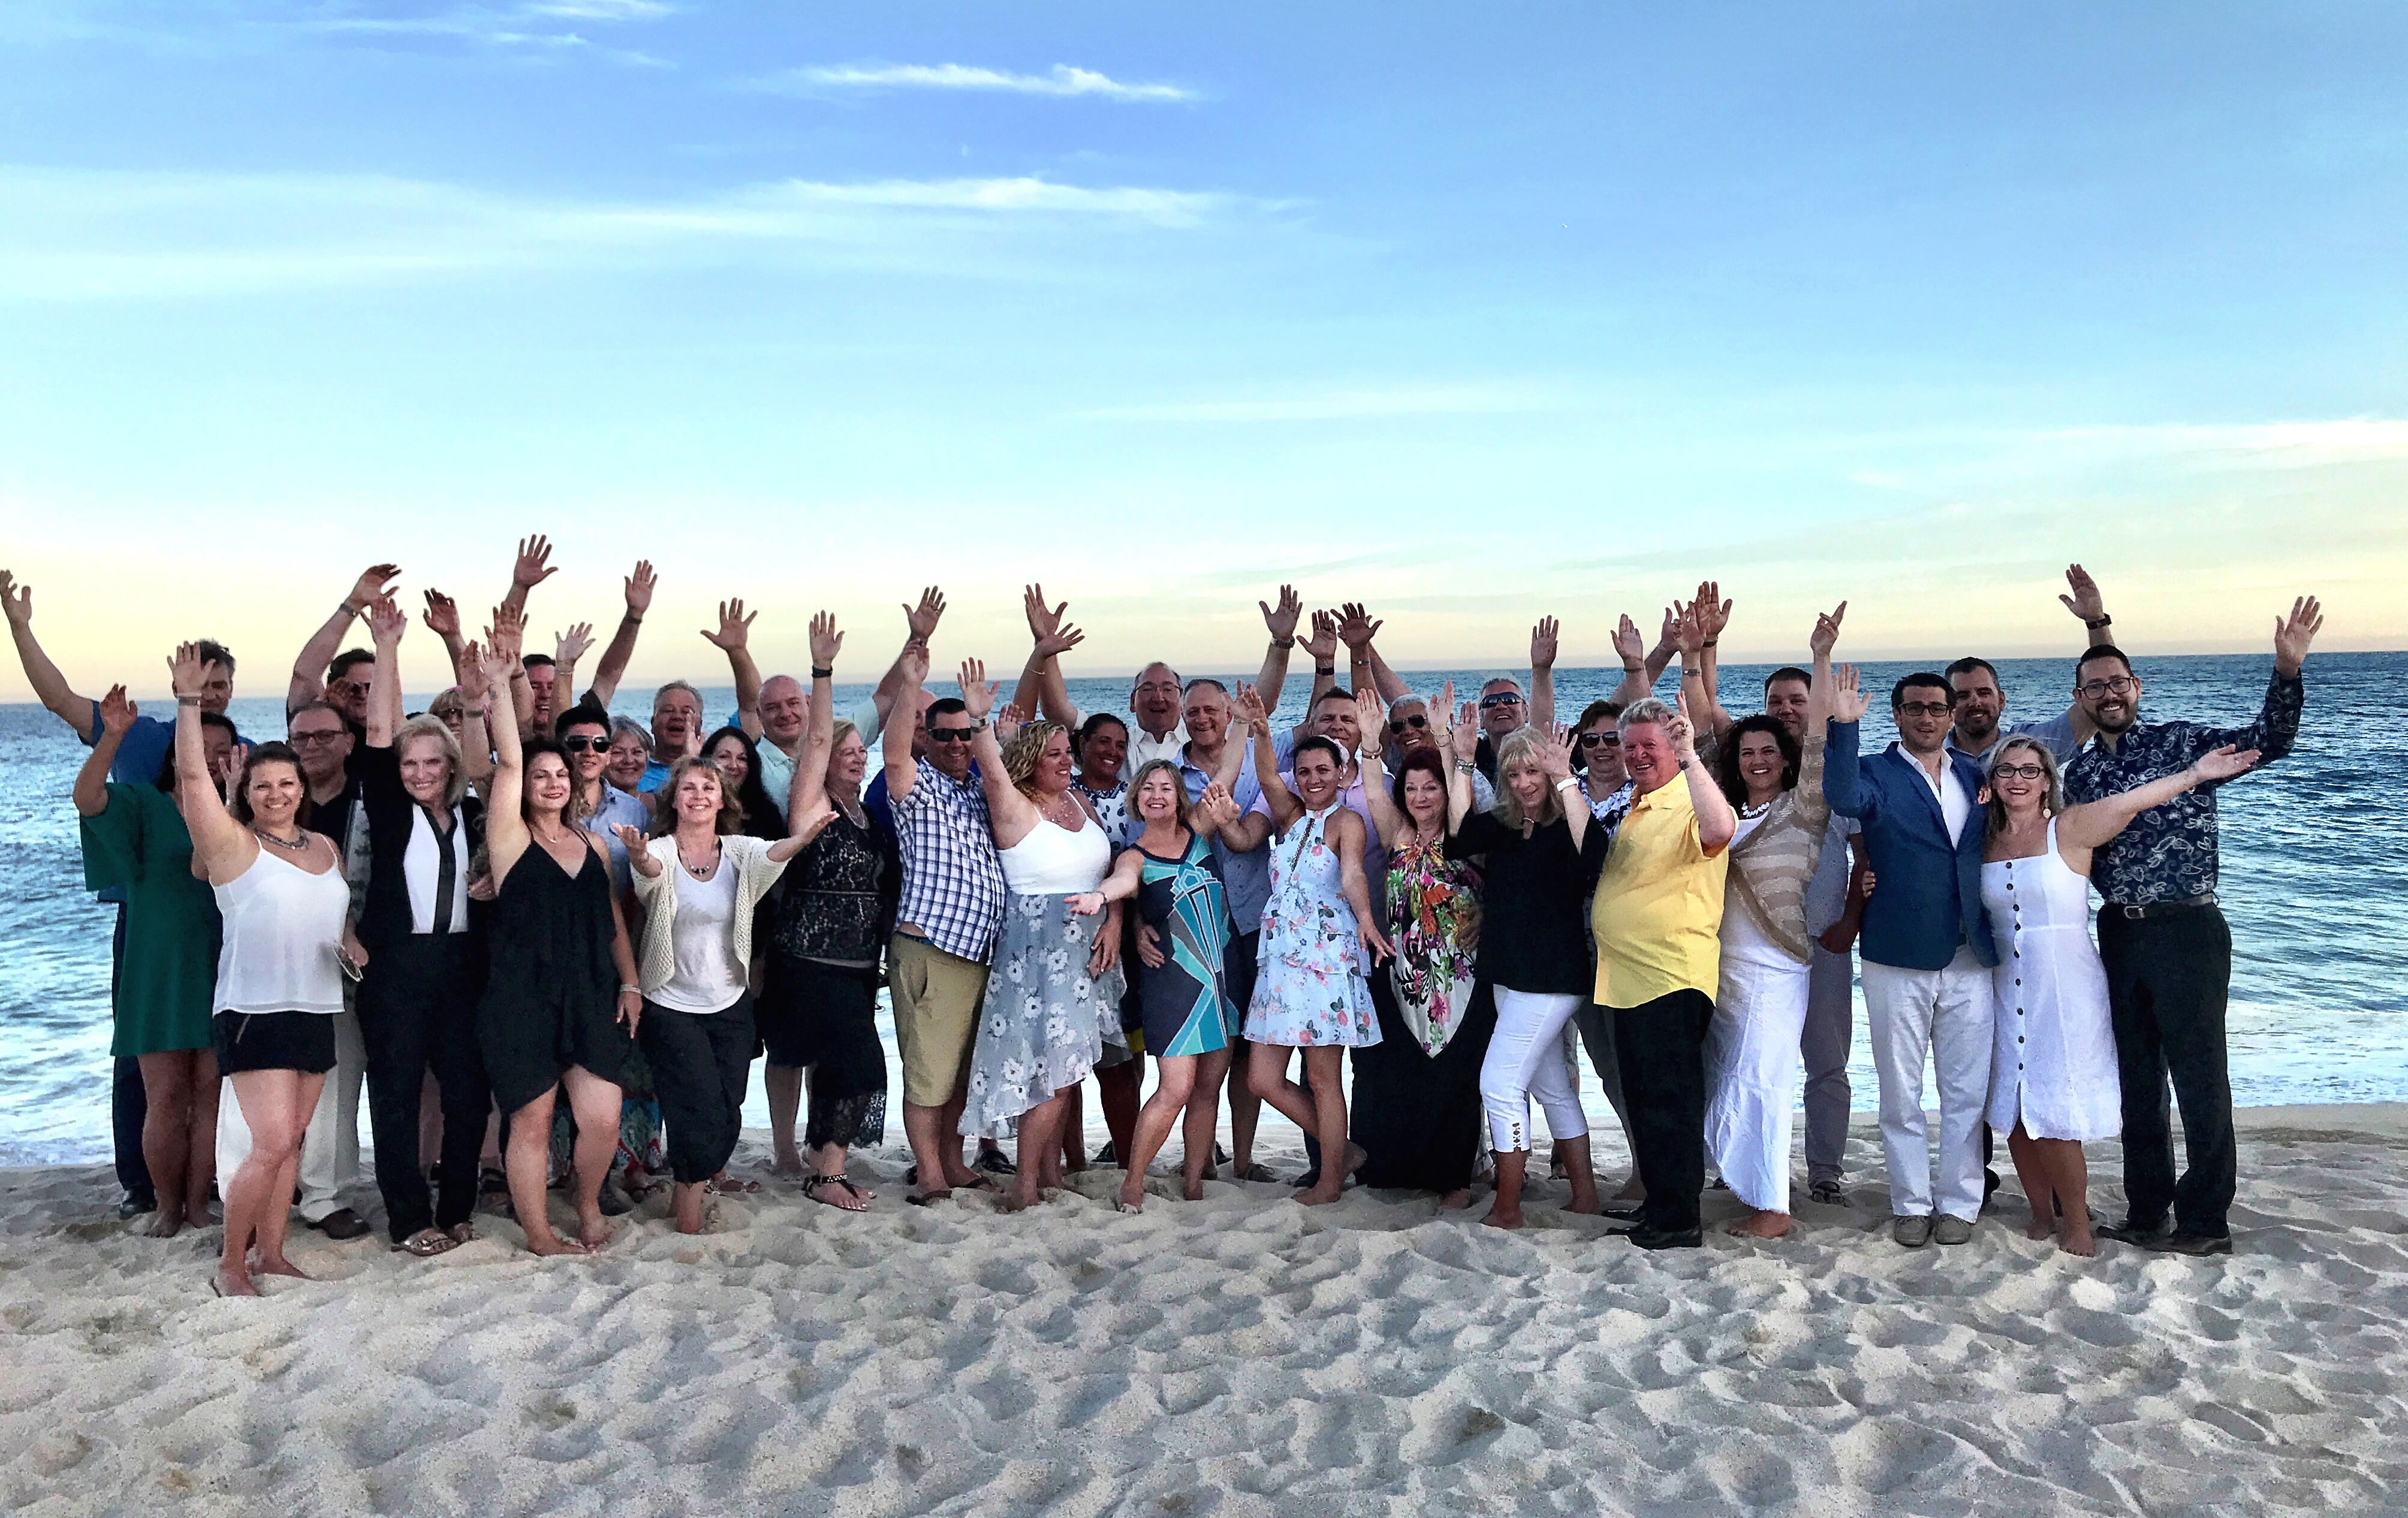 GROUP PHOTO. TravelOnly's top producers and guests pose for a photo on the beachfront of Le Blanc Spa Resort in Los Cabos, Mexico.